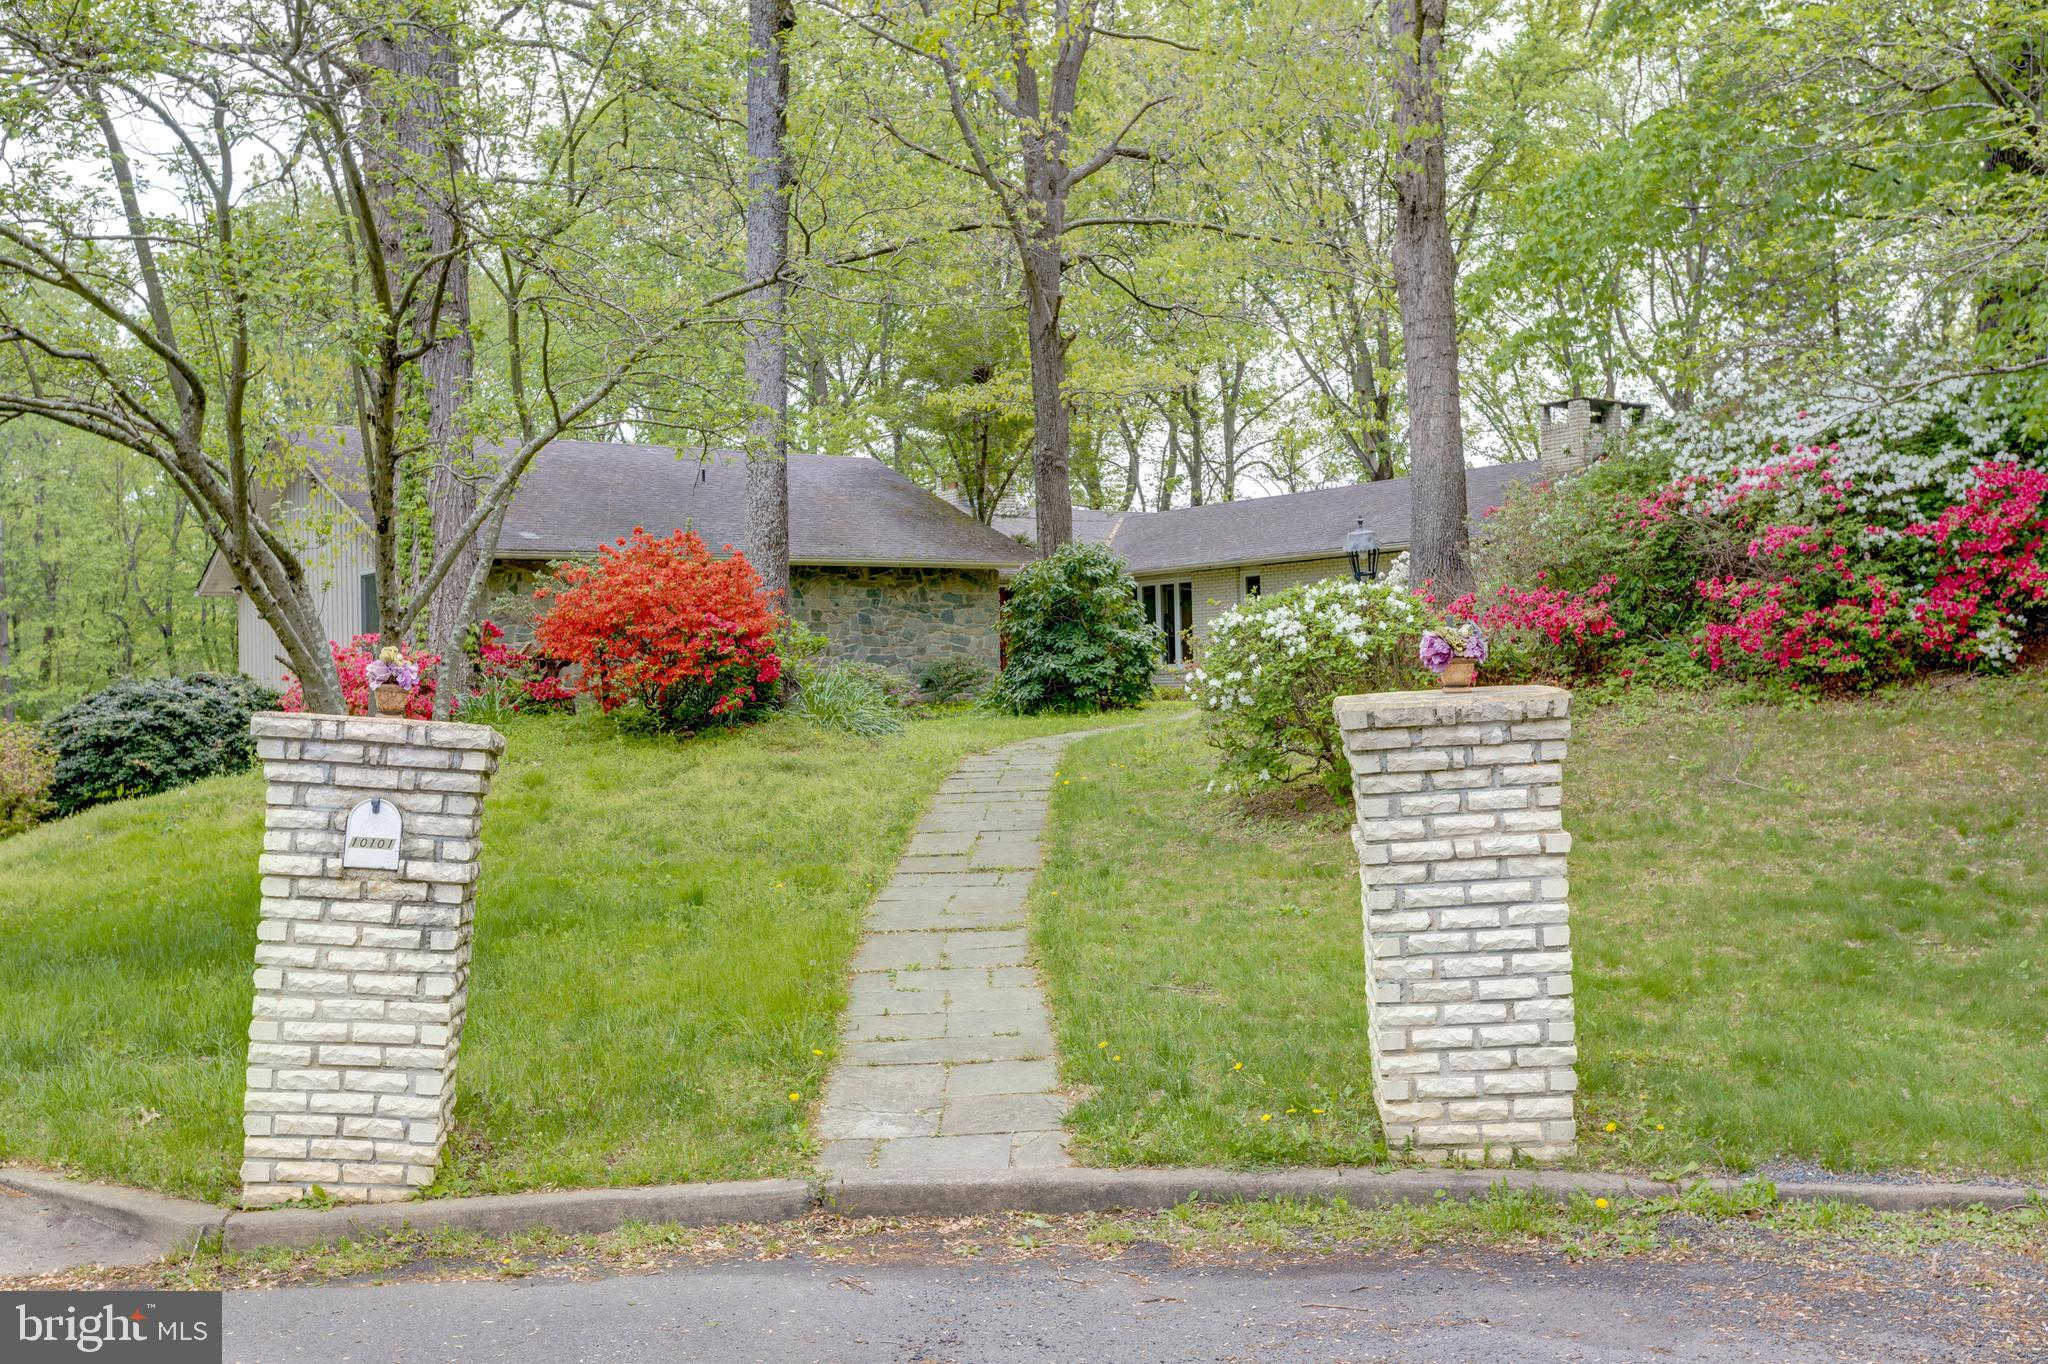 10101 Captain Hickory Place, Great Falls, VA 22066 has an Open House on  Saturday, May 25, 2019 1:00 PM to 4:00 PM